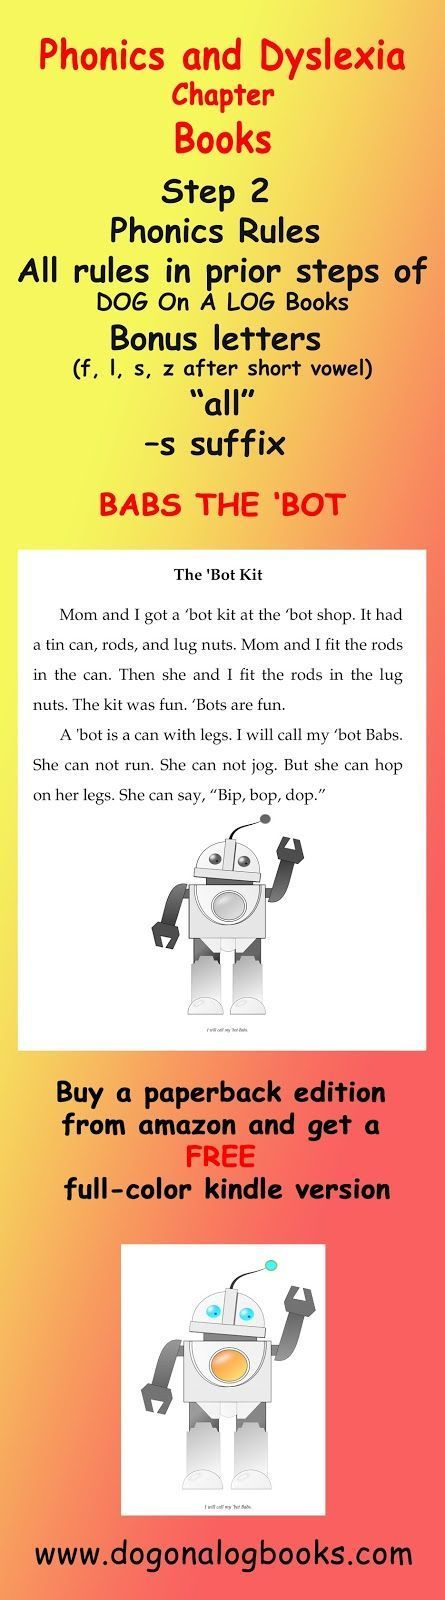 29 best decodable text easy chapter books images on pinterest for phonics readers and folks with a dyslexic learning style these books are written with fandeluxe Choice Image